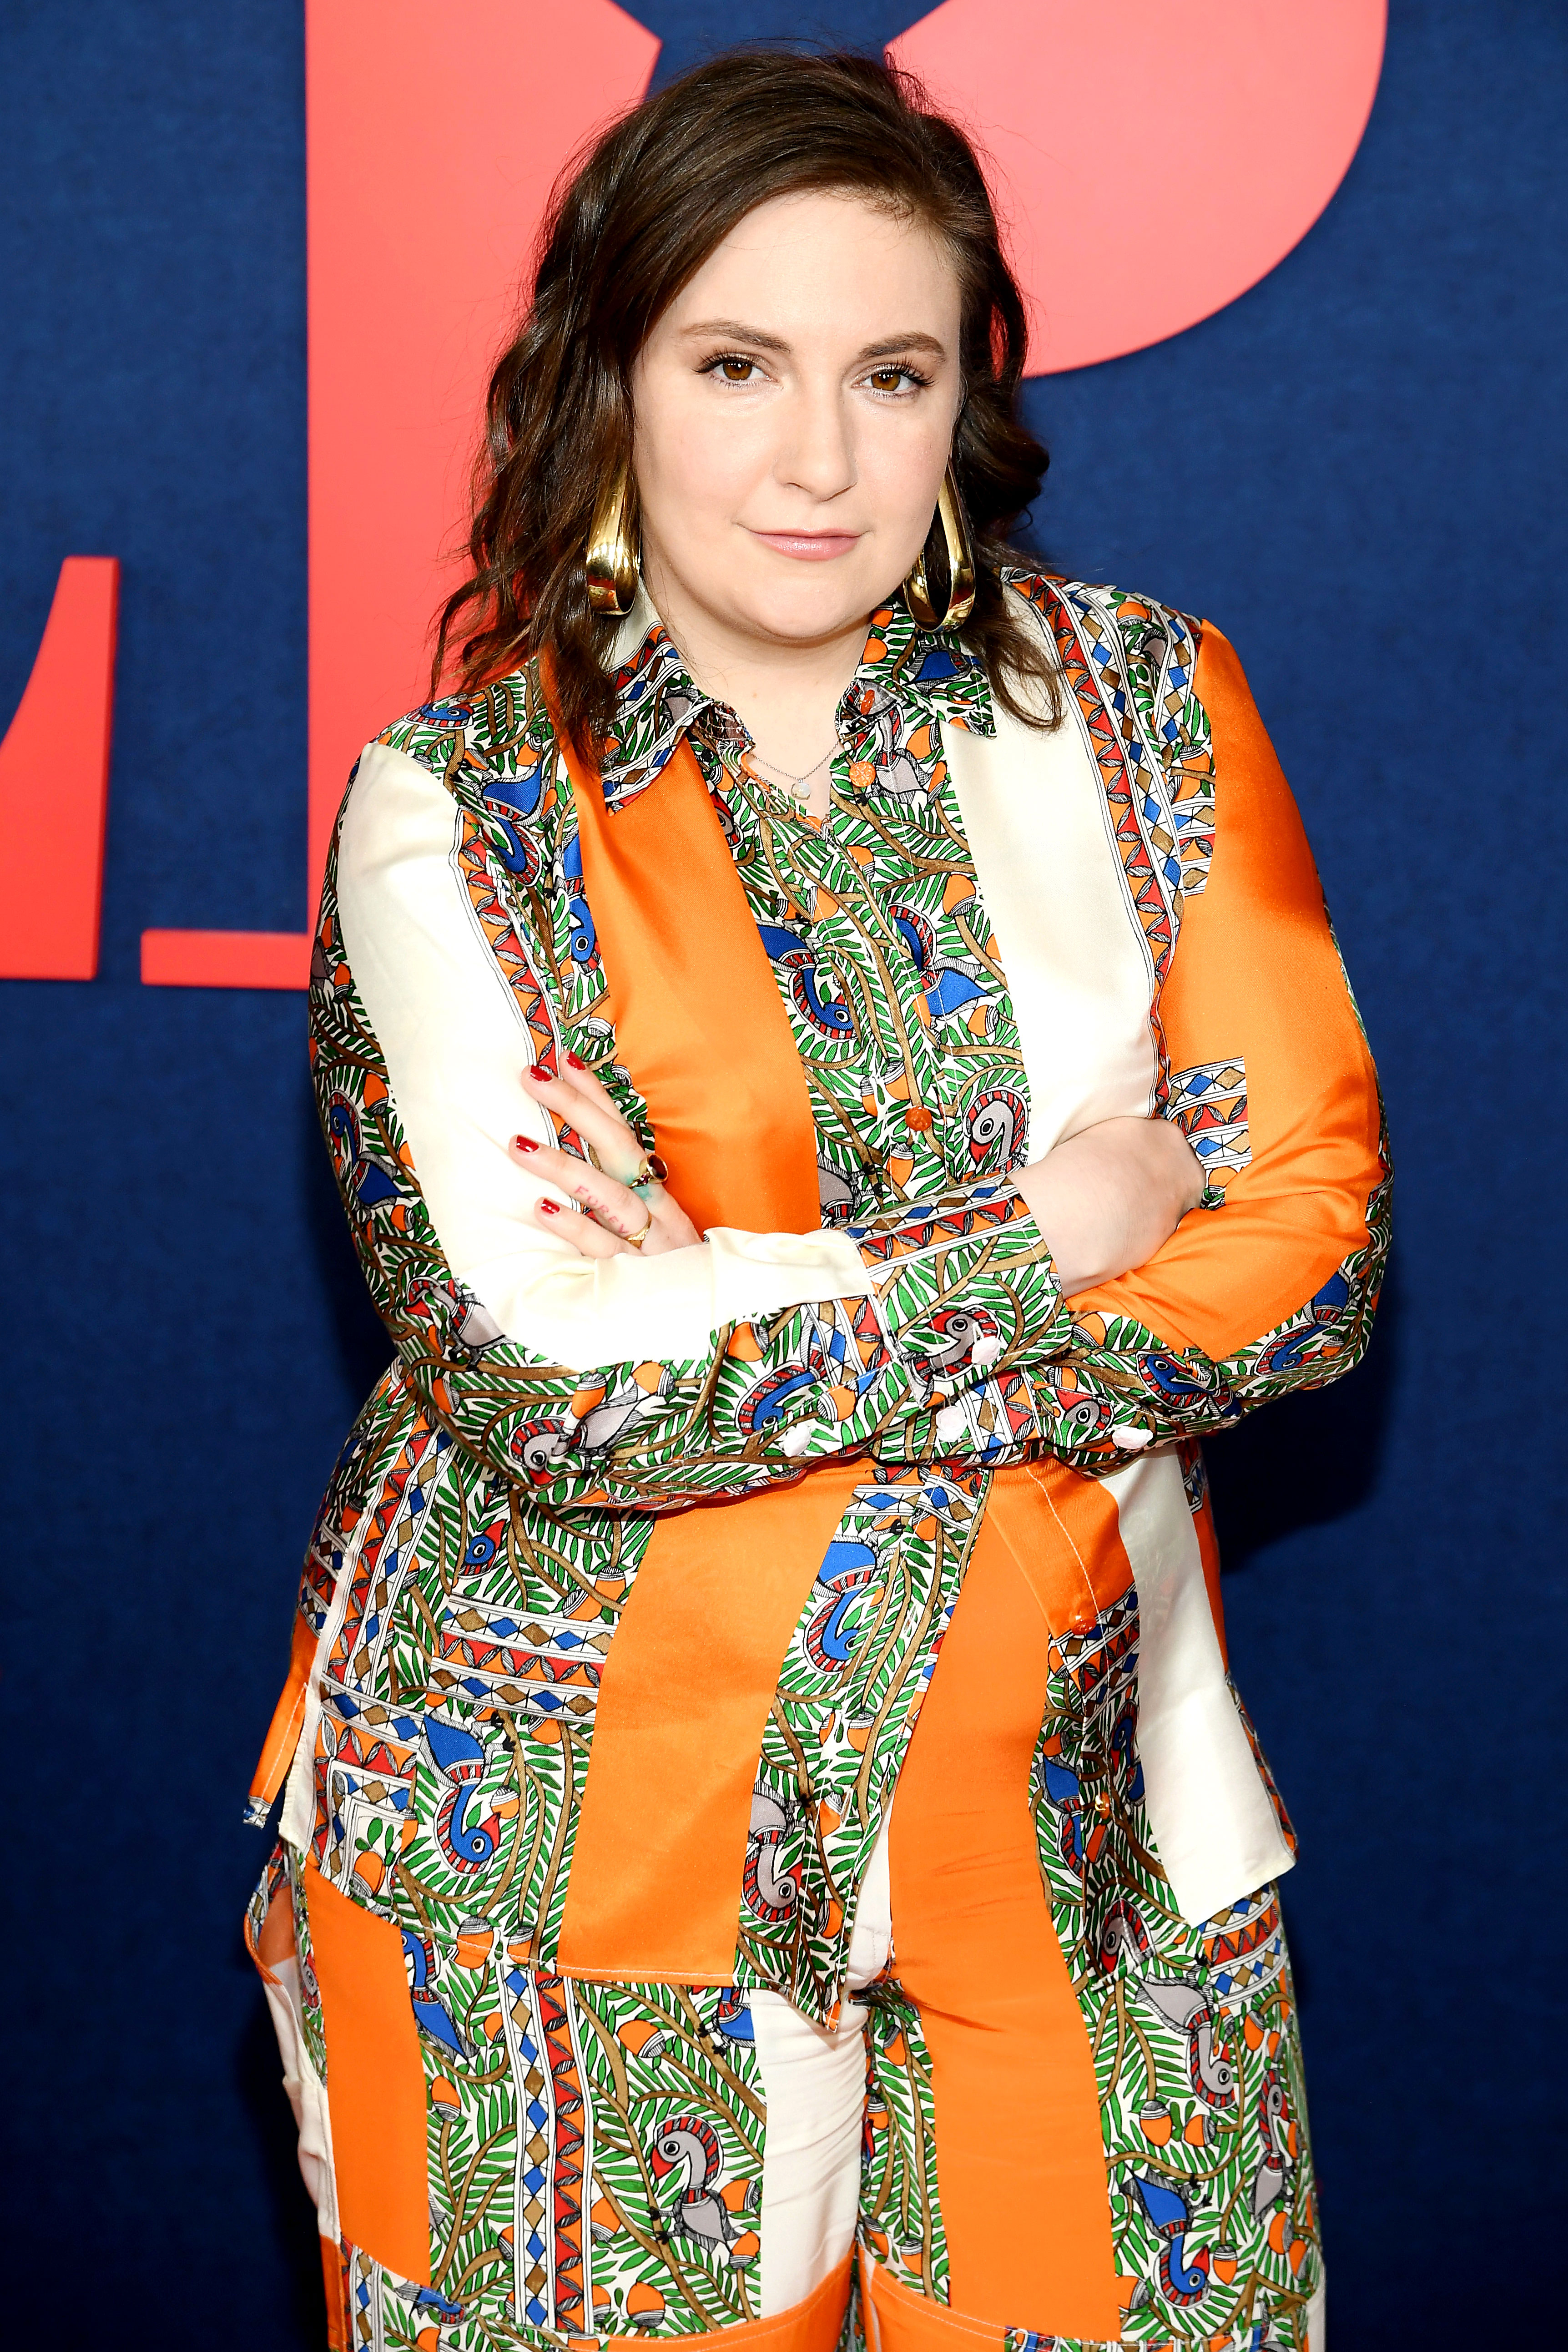 "Lena Dunham Gets Neck Tattoo of What She's 'Most Scared of Being Called' - Lena Dunham attends the ""Veep"" Season 7 premiere at Alice Tully Hall, Lincoln Center on March 26, 2019 in New York City."